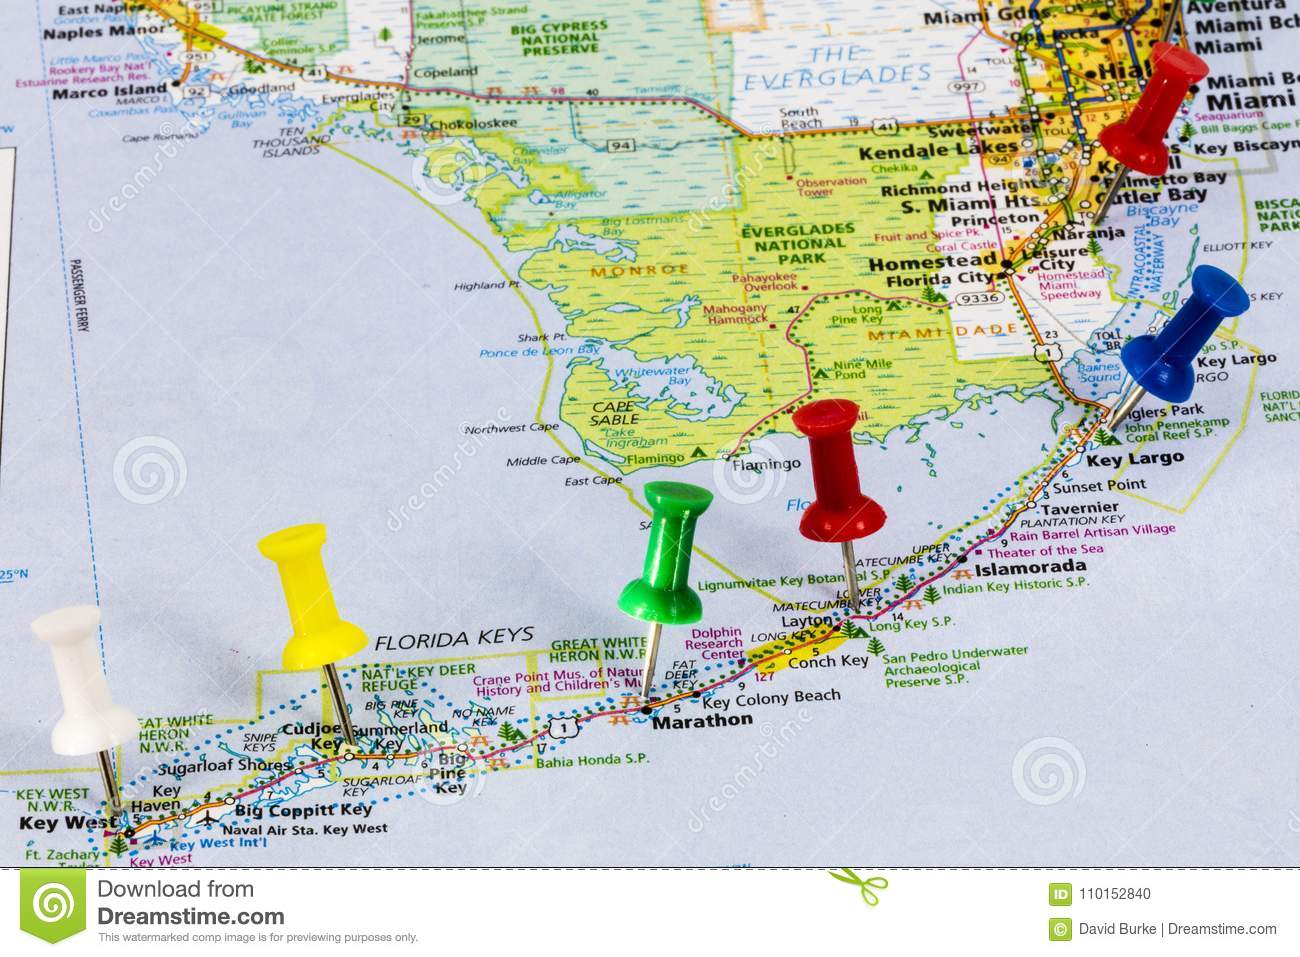 Map Of Florida Key West.Florida Keys Miami Map Editorial Image Image Of Miami 110152840